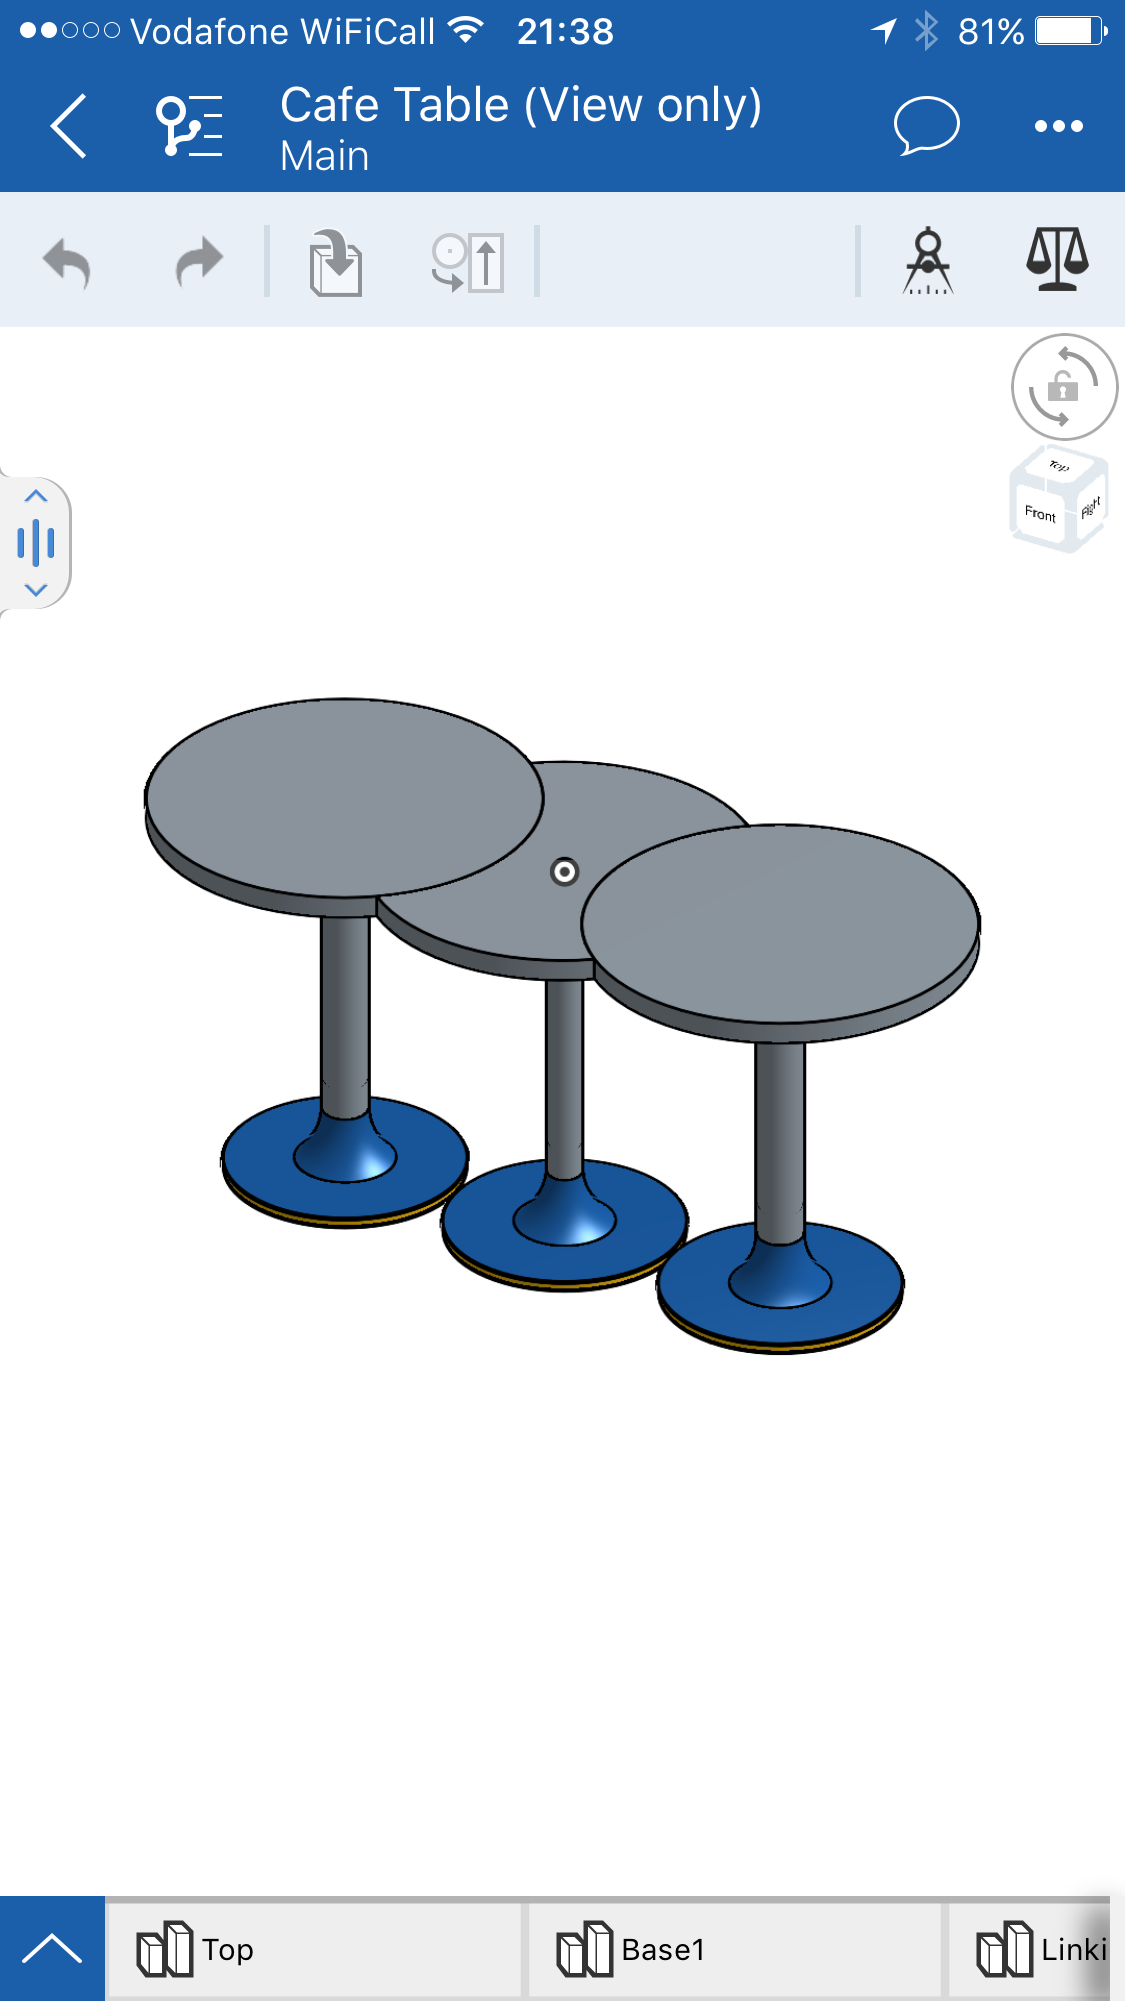 Cafe Table 3D visualisation